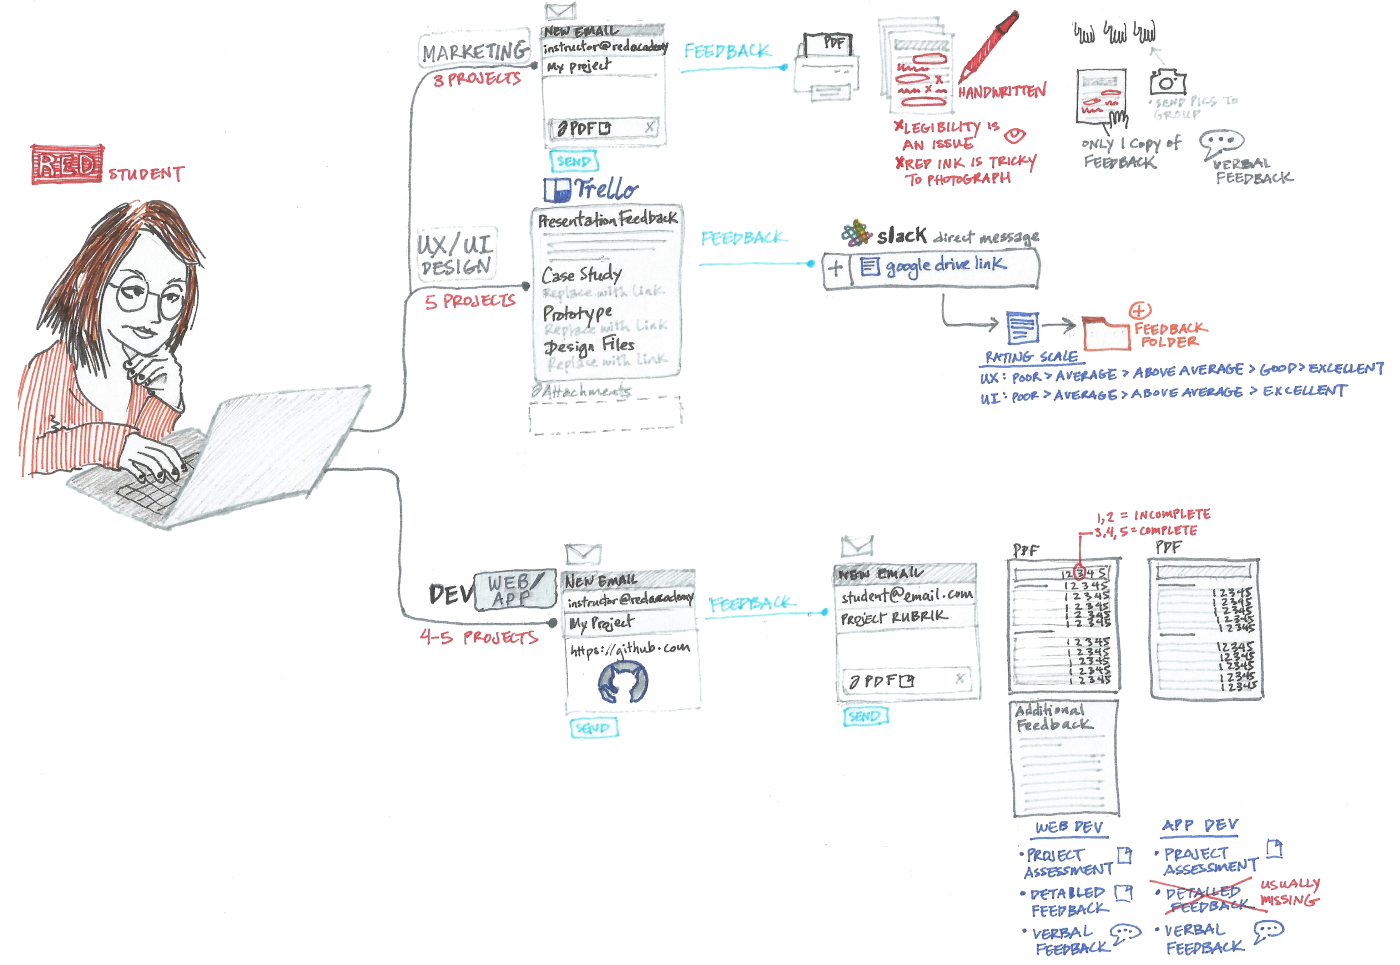 Space Bear: Student Information System for RED Academy